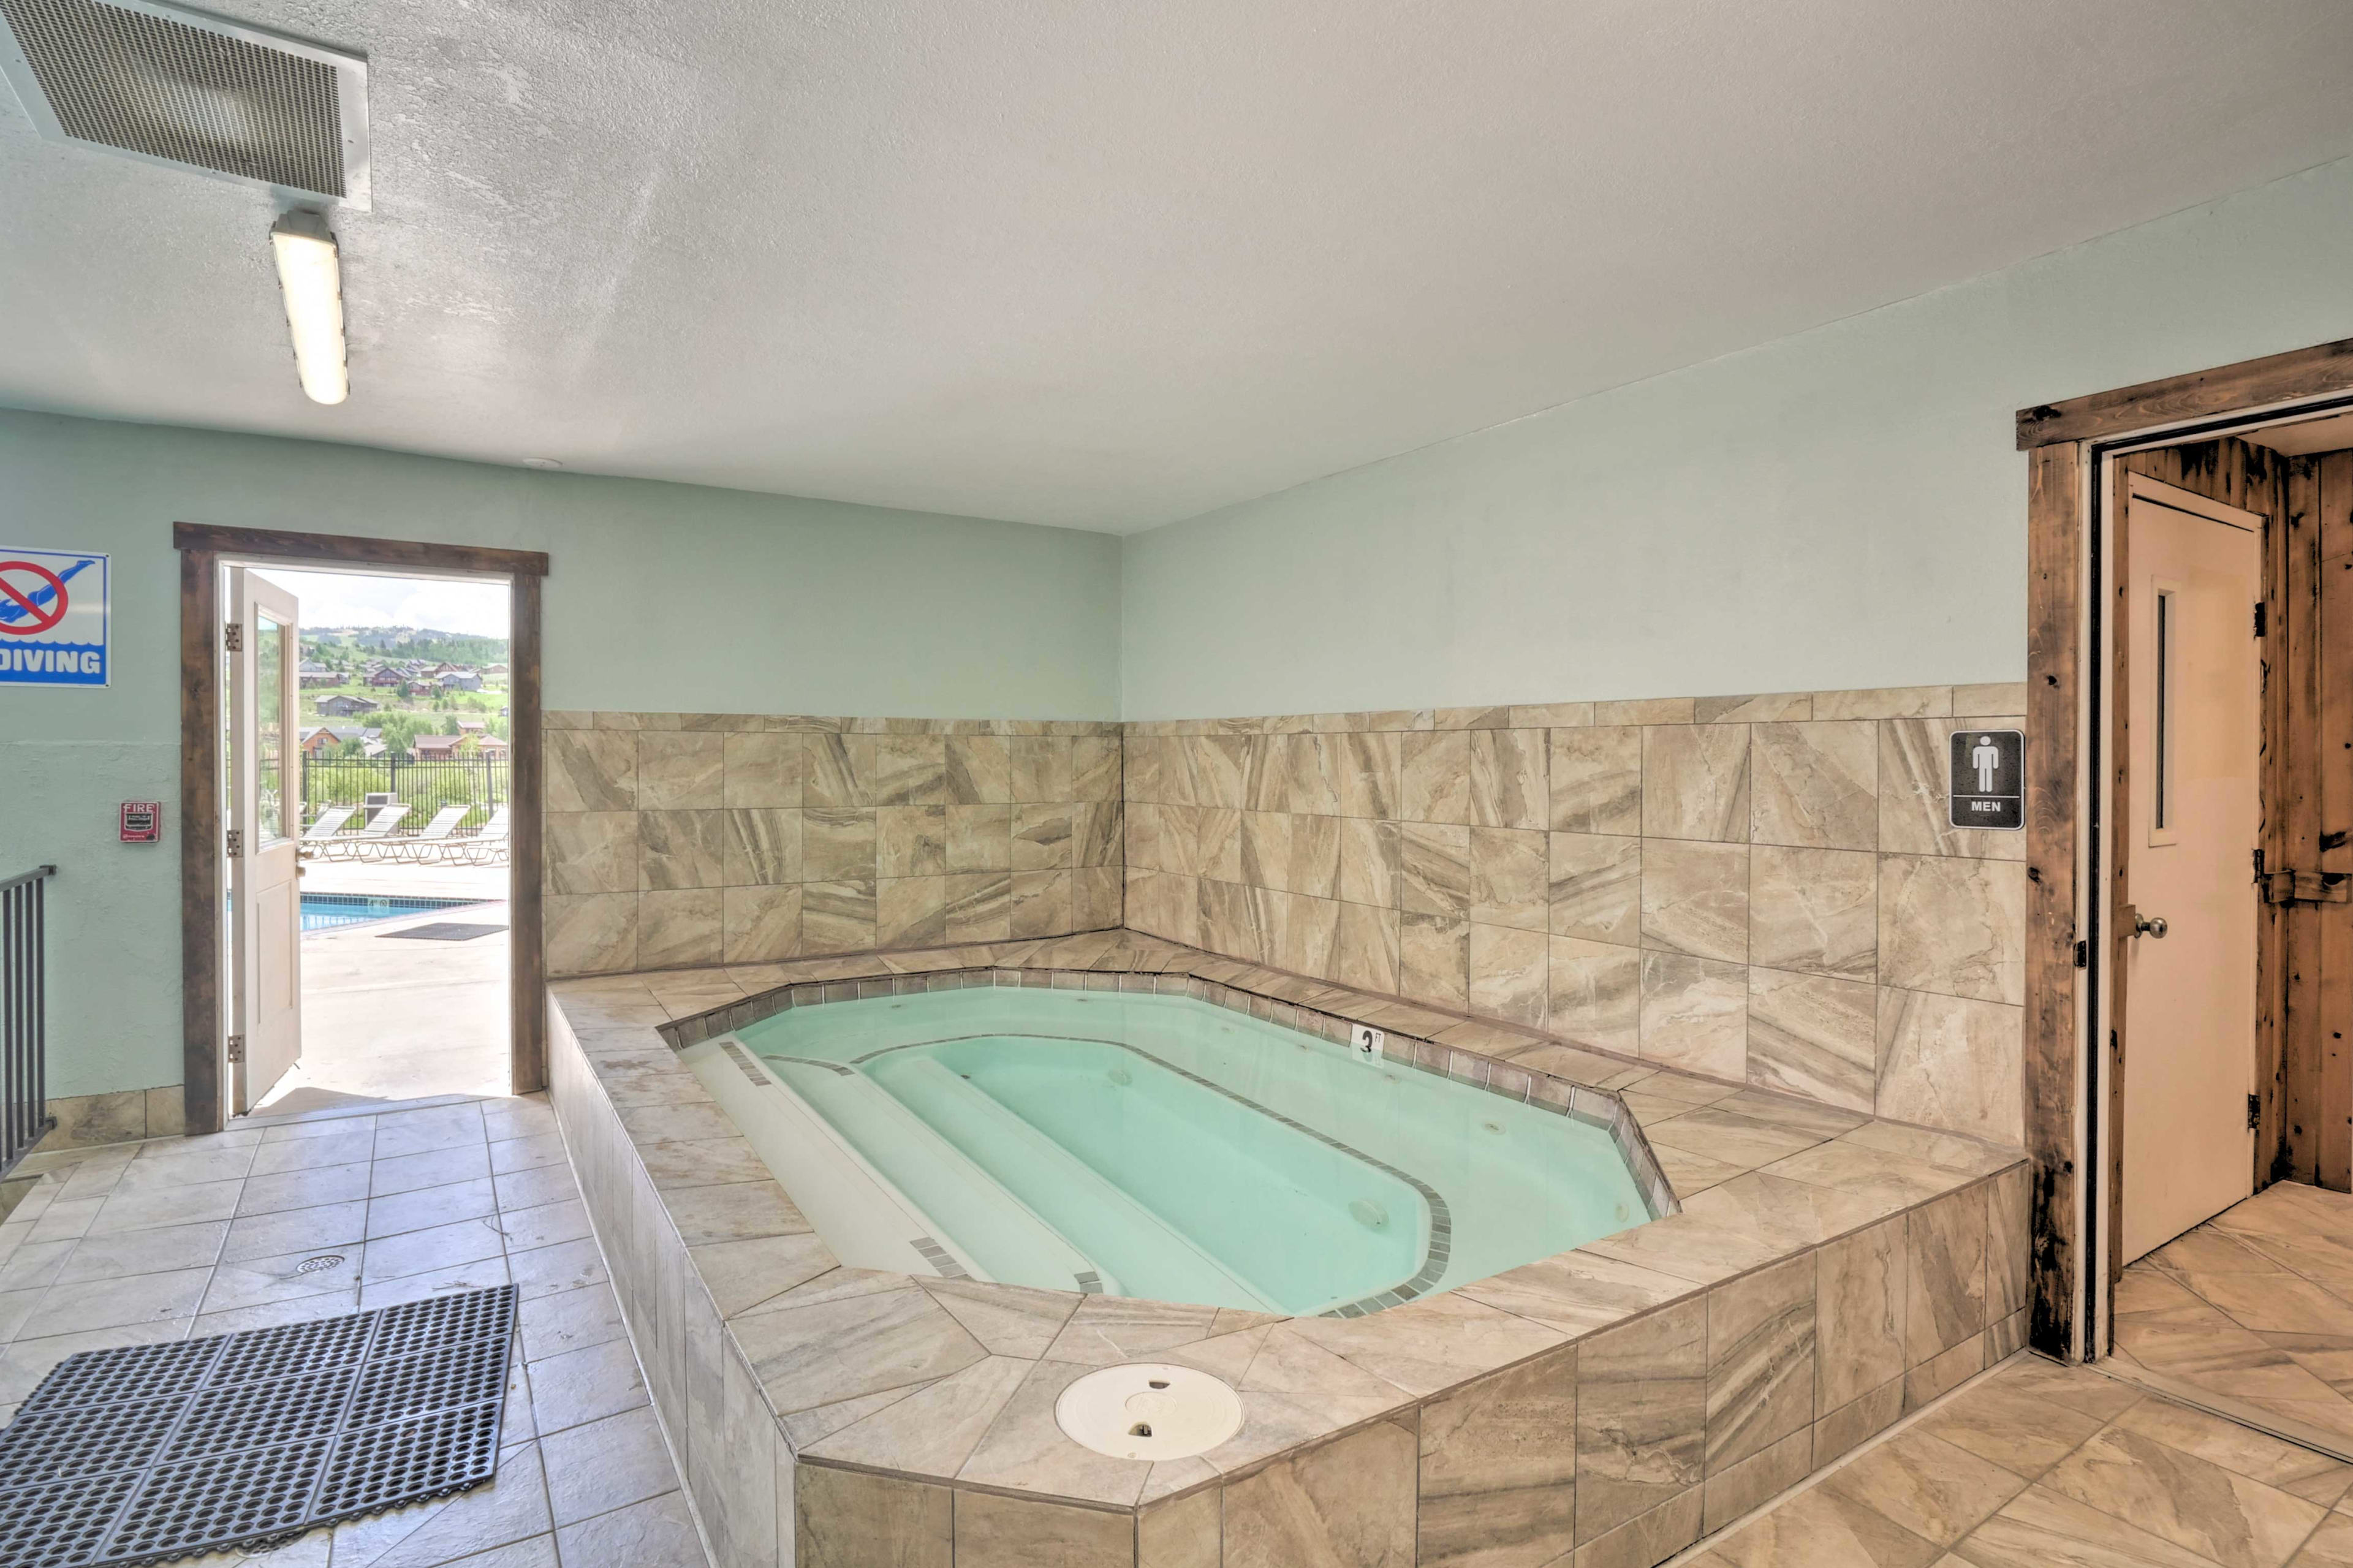 Take a dip in the inside hot tub.